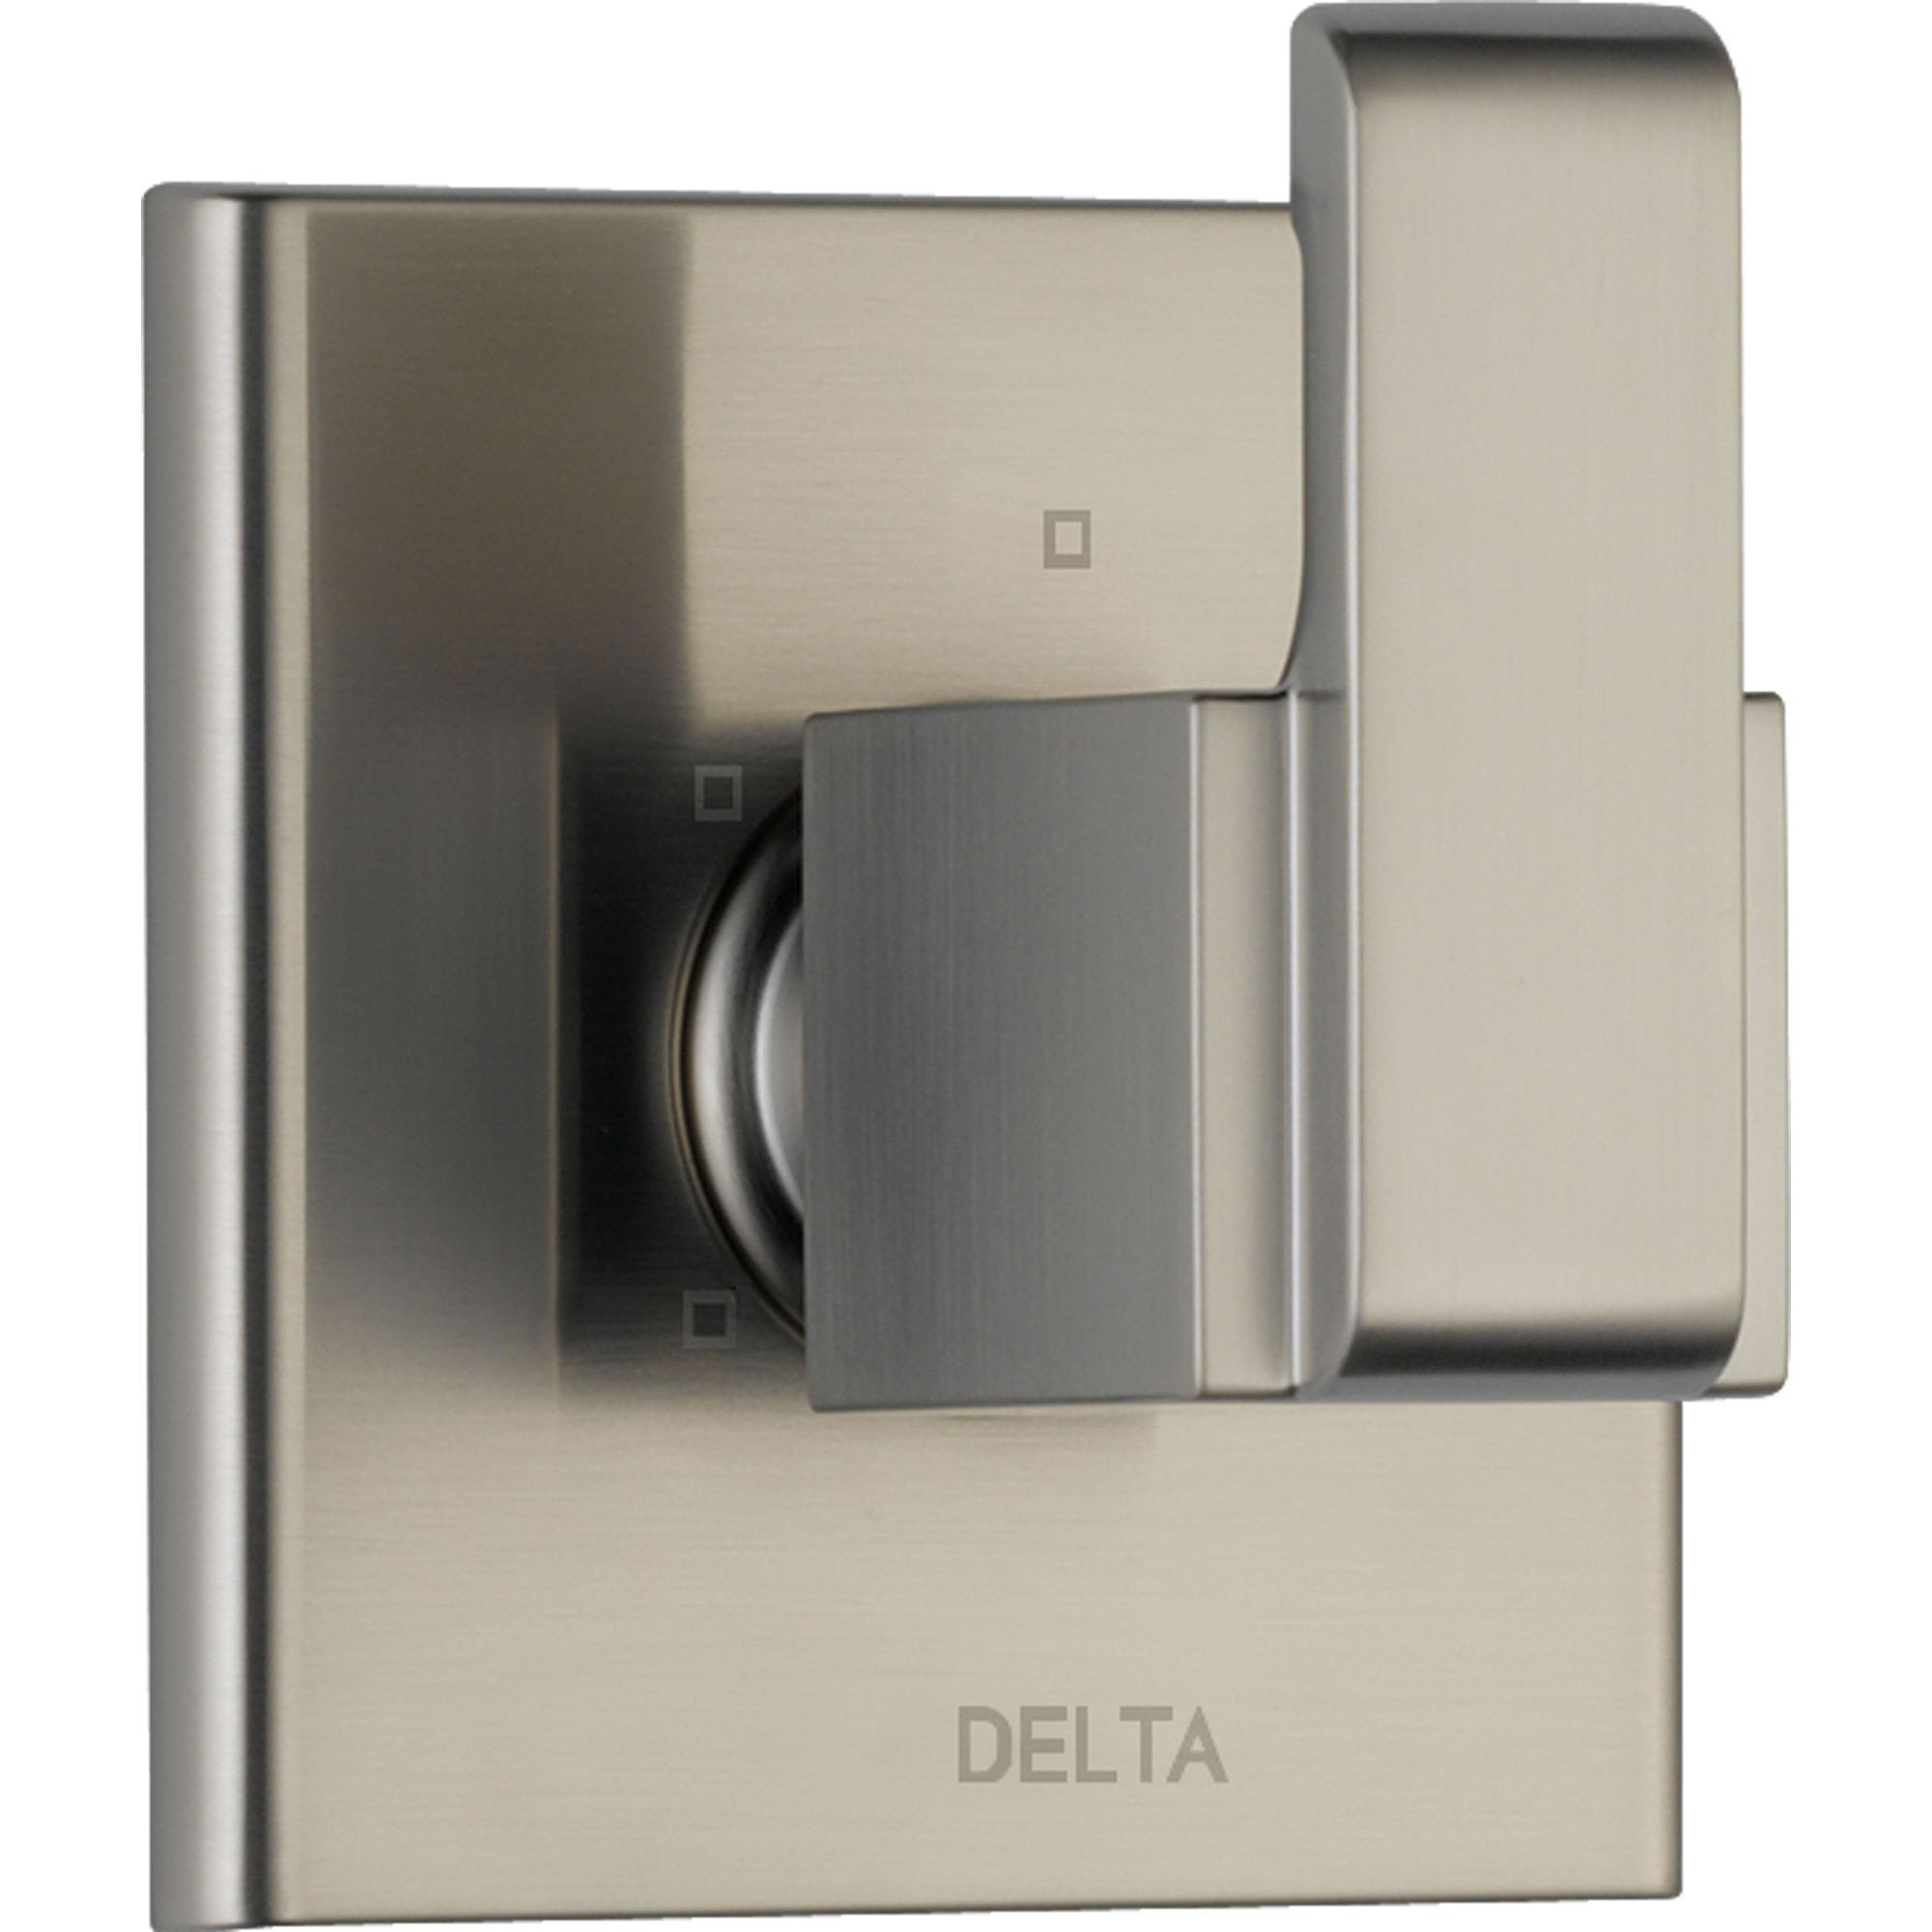 Delta Arzo Modern 3-Setting Stainless Steel Shower Diverter Trim w/ Valve D198V